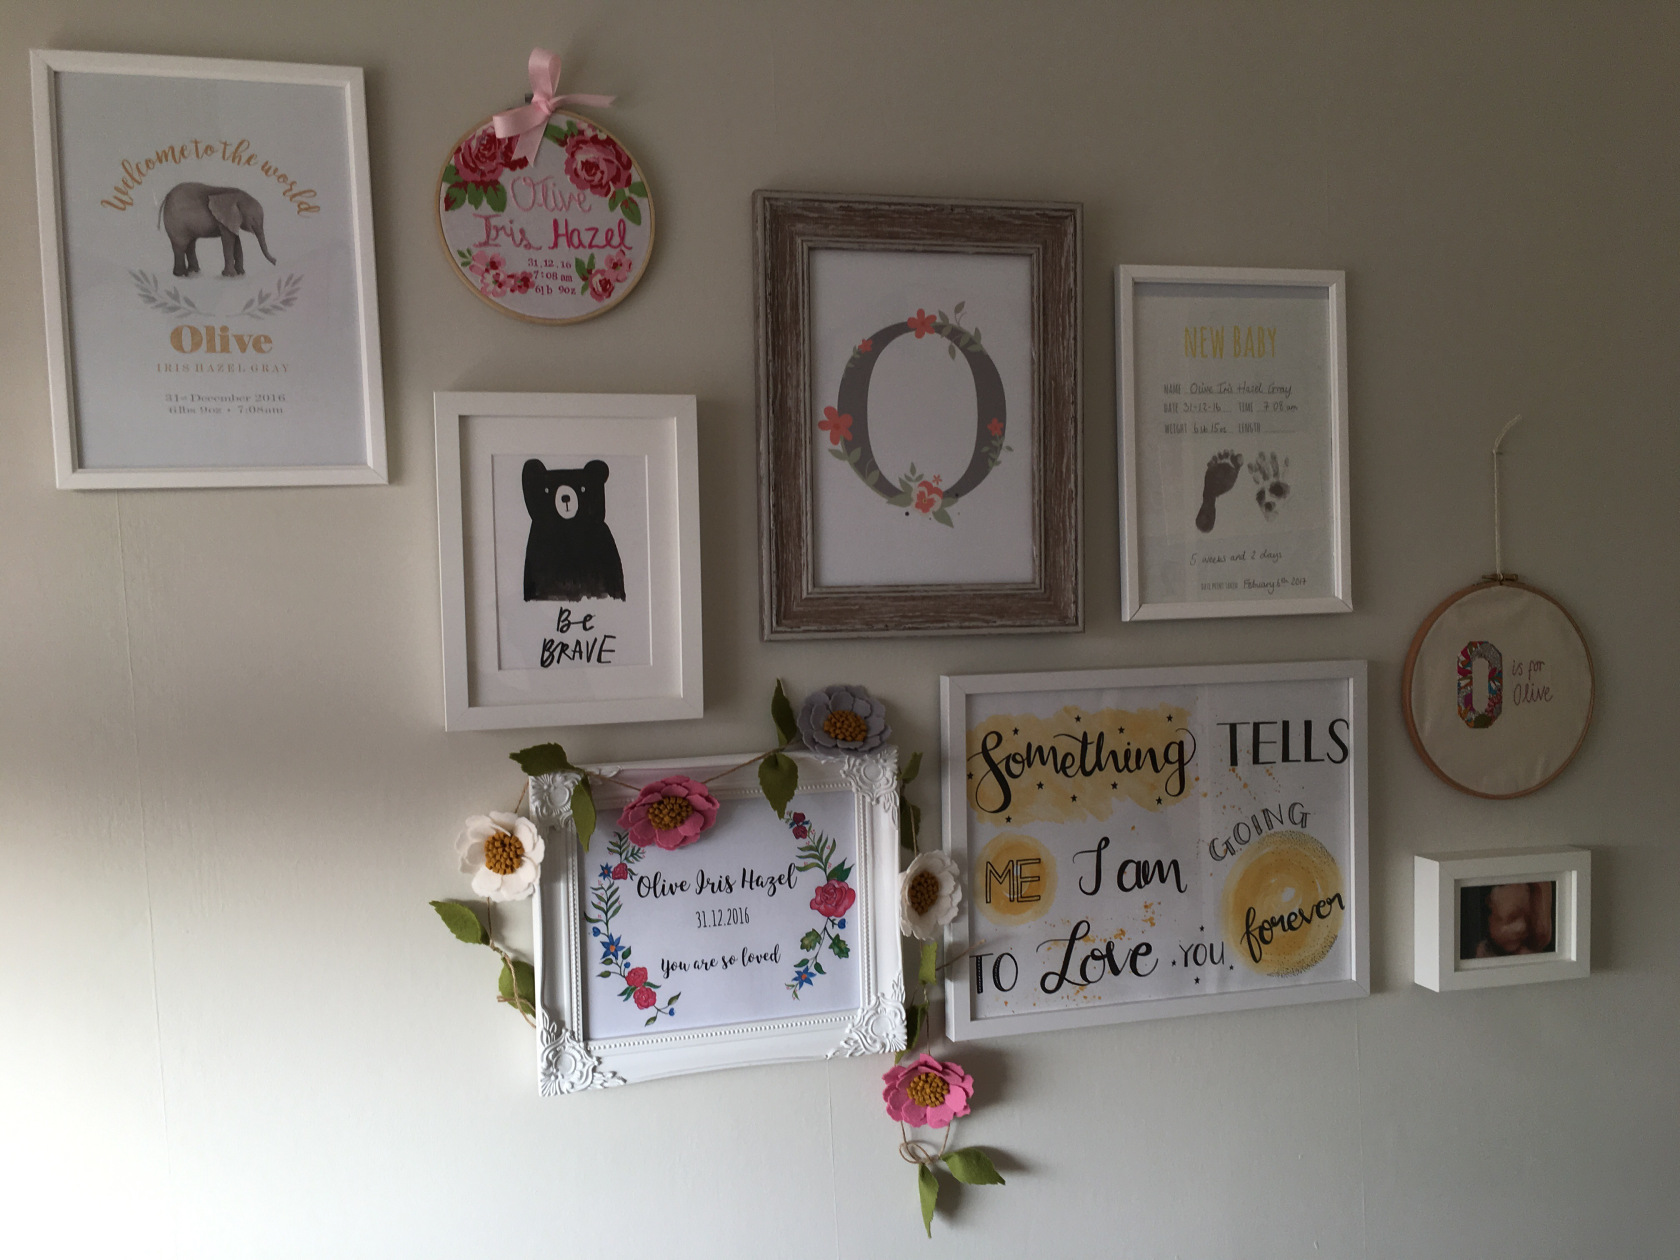 personalised prints - life with oaks and olive